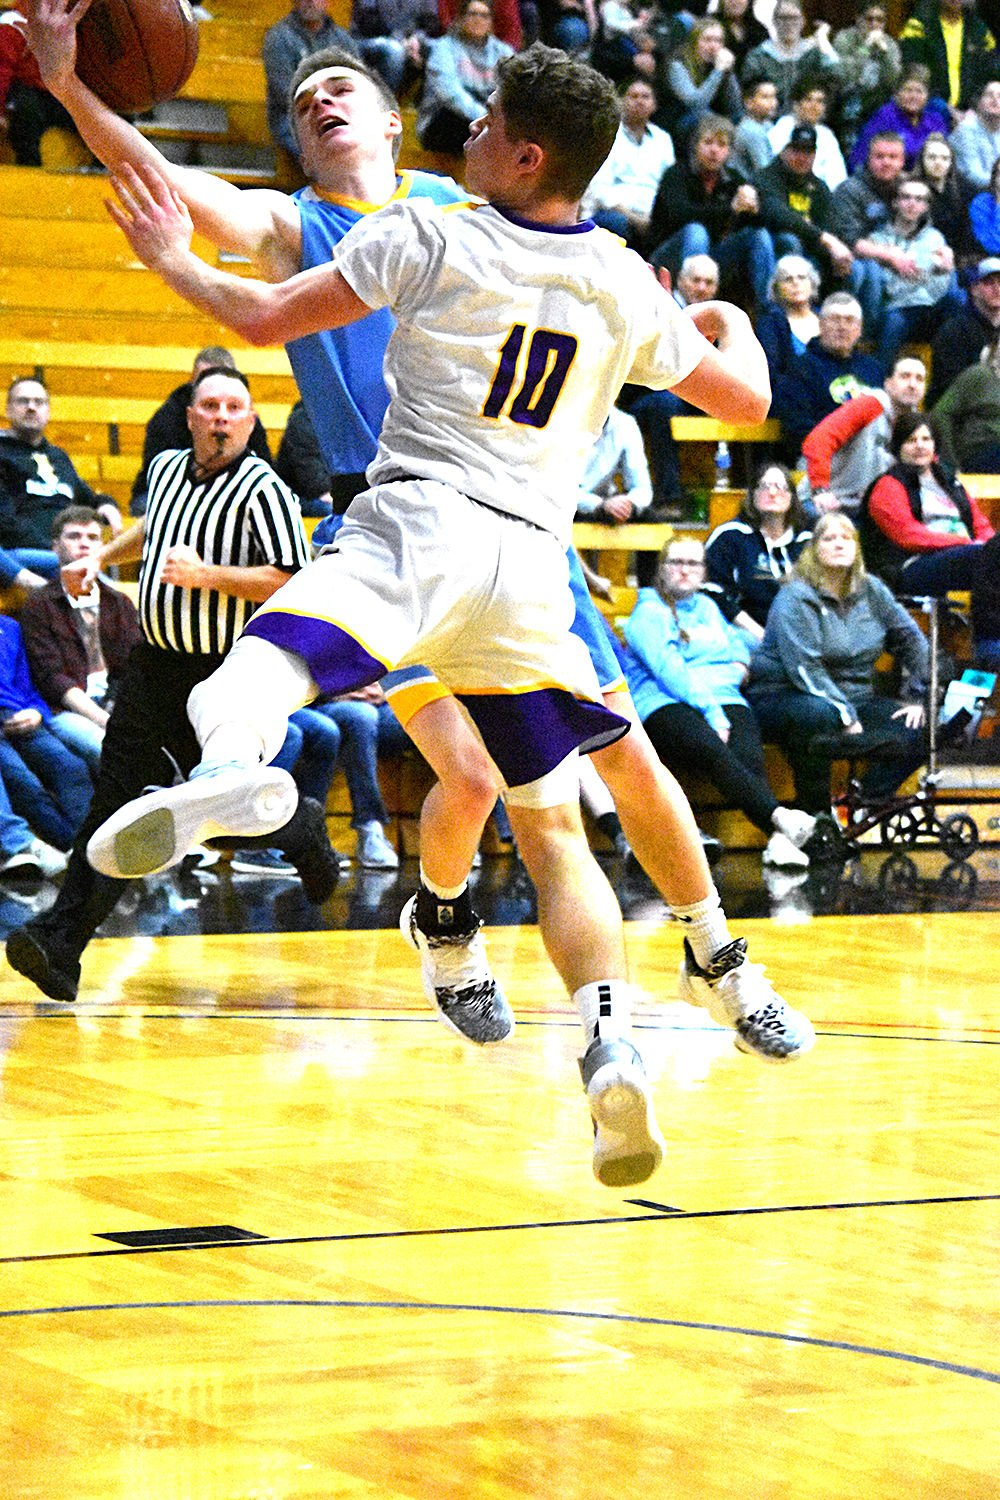 Tigers enter regionals with big chips on their shoulders